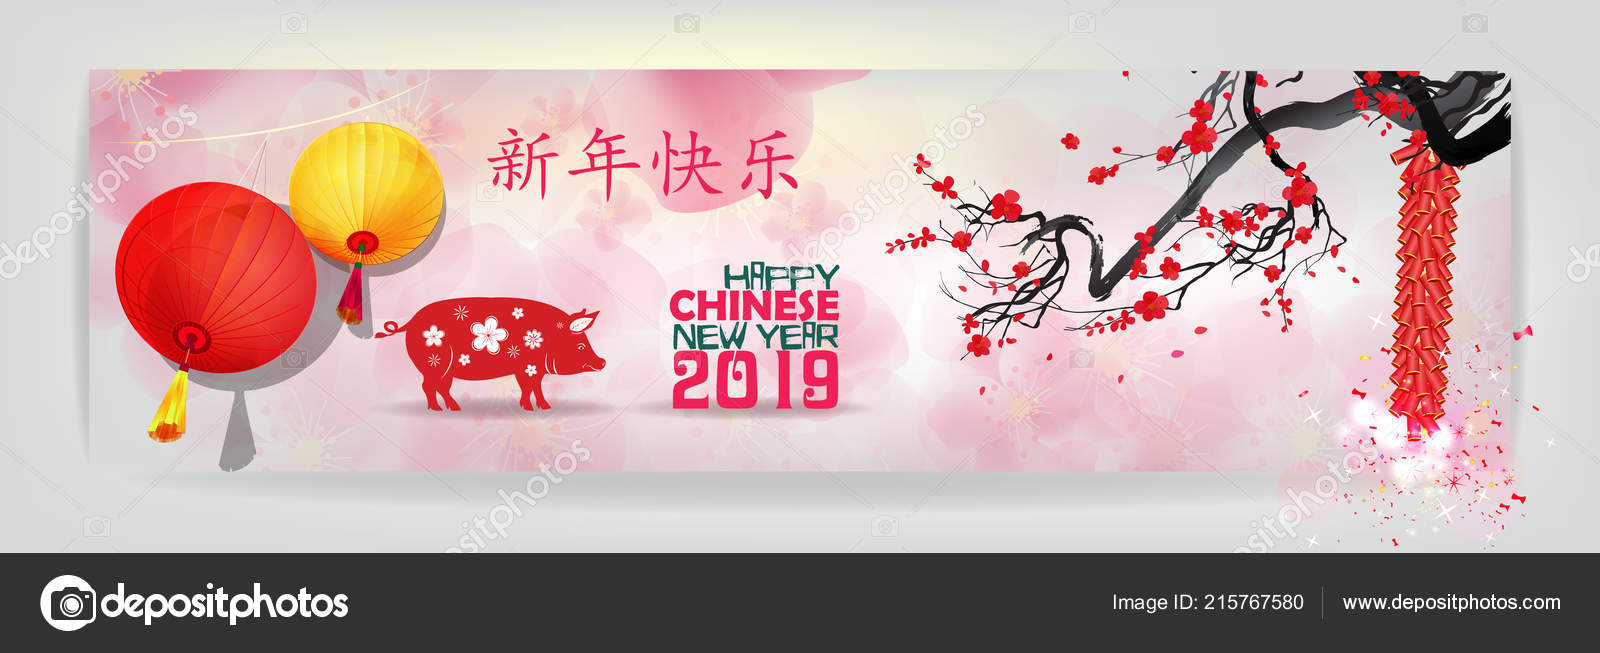 creative chinese new year 2019 invitation cards year pig chinese stock vector